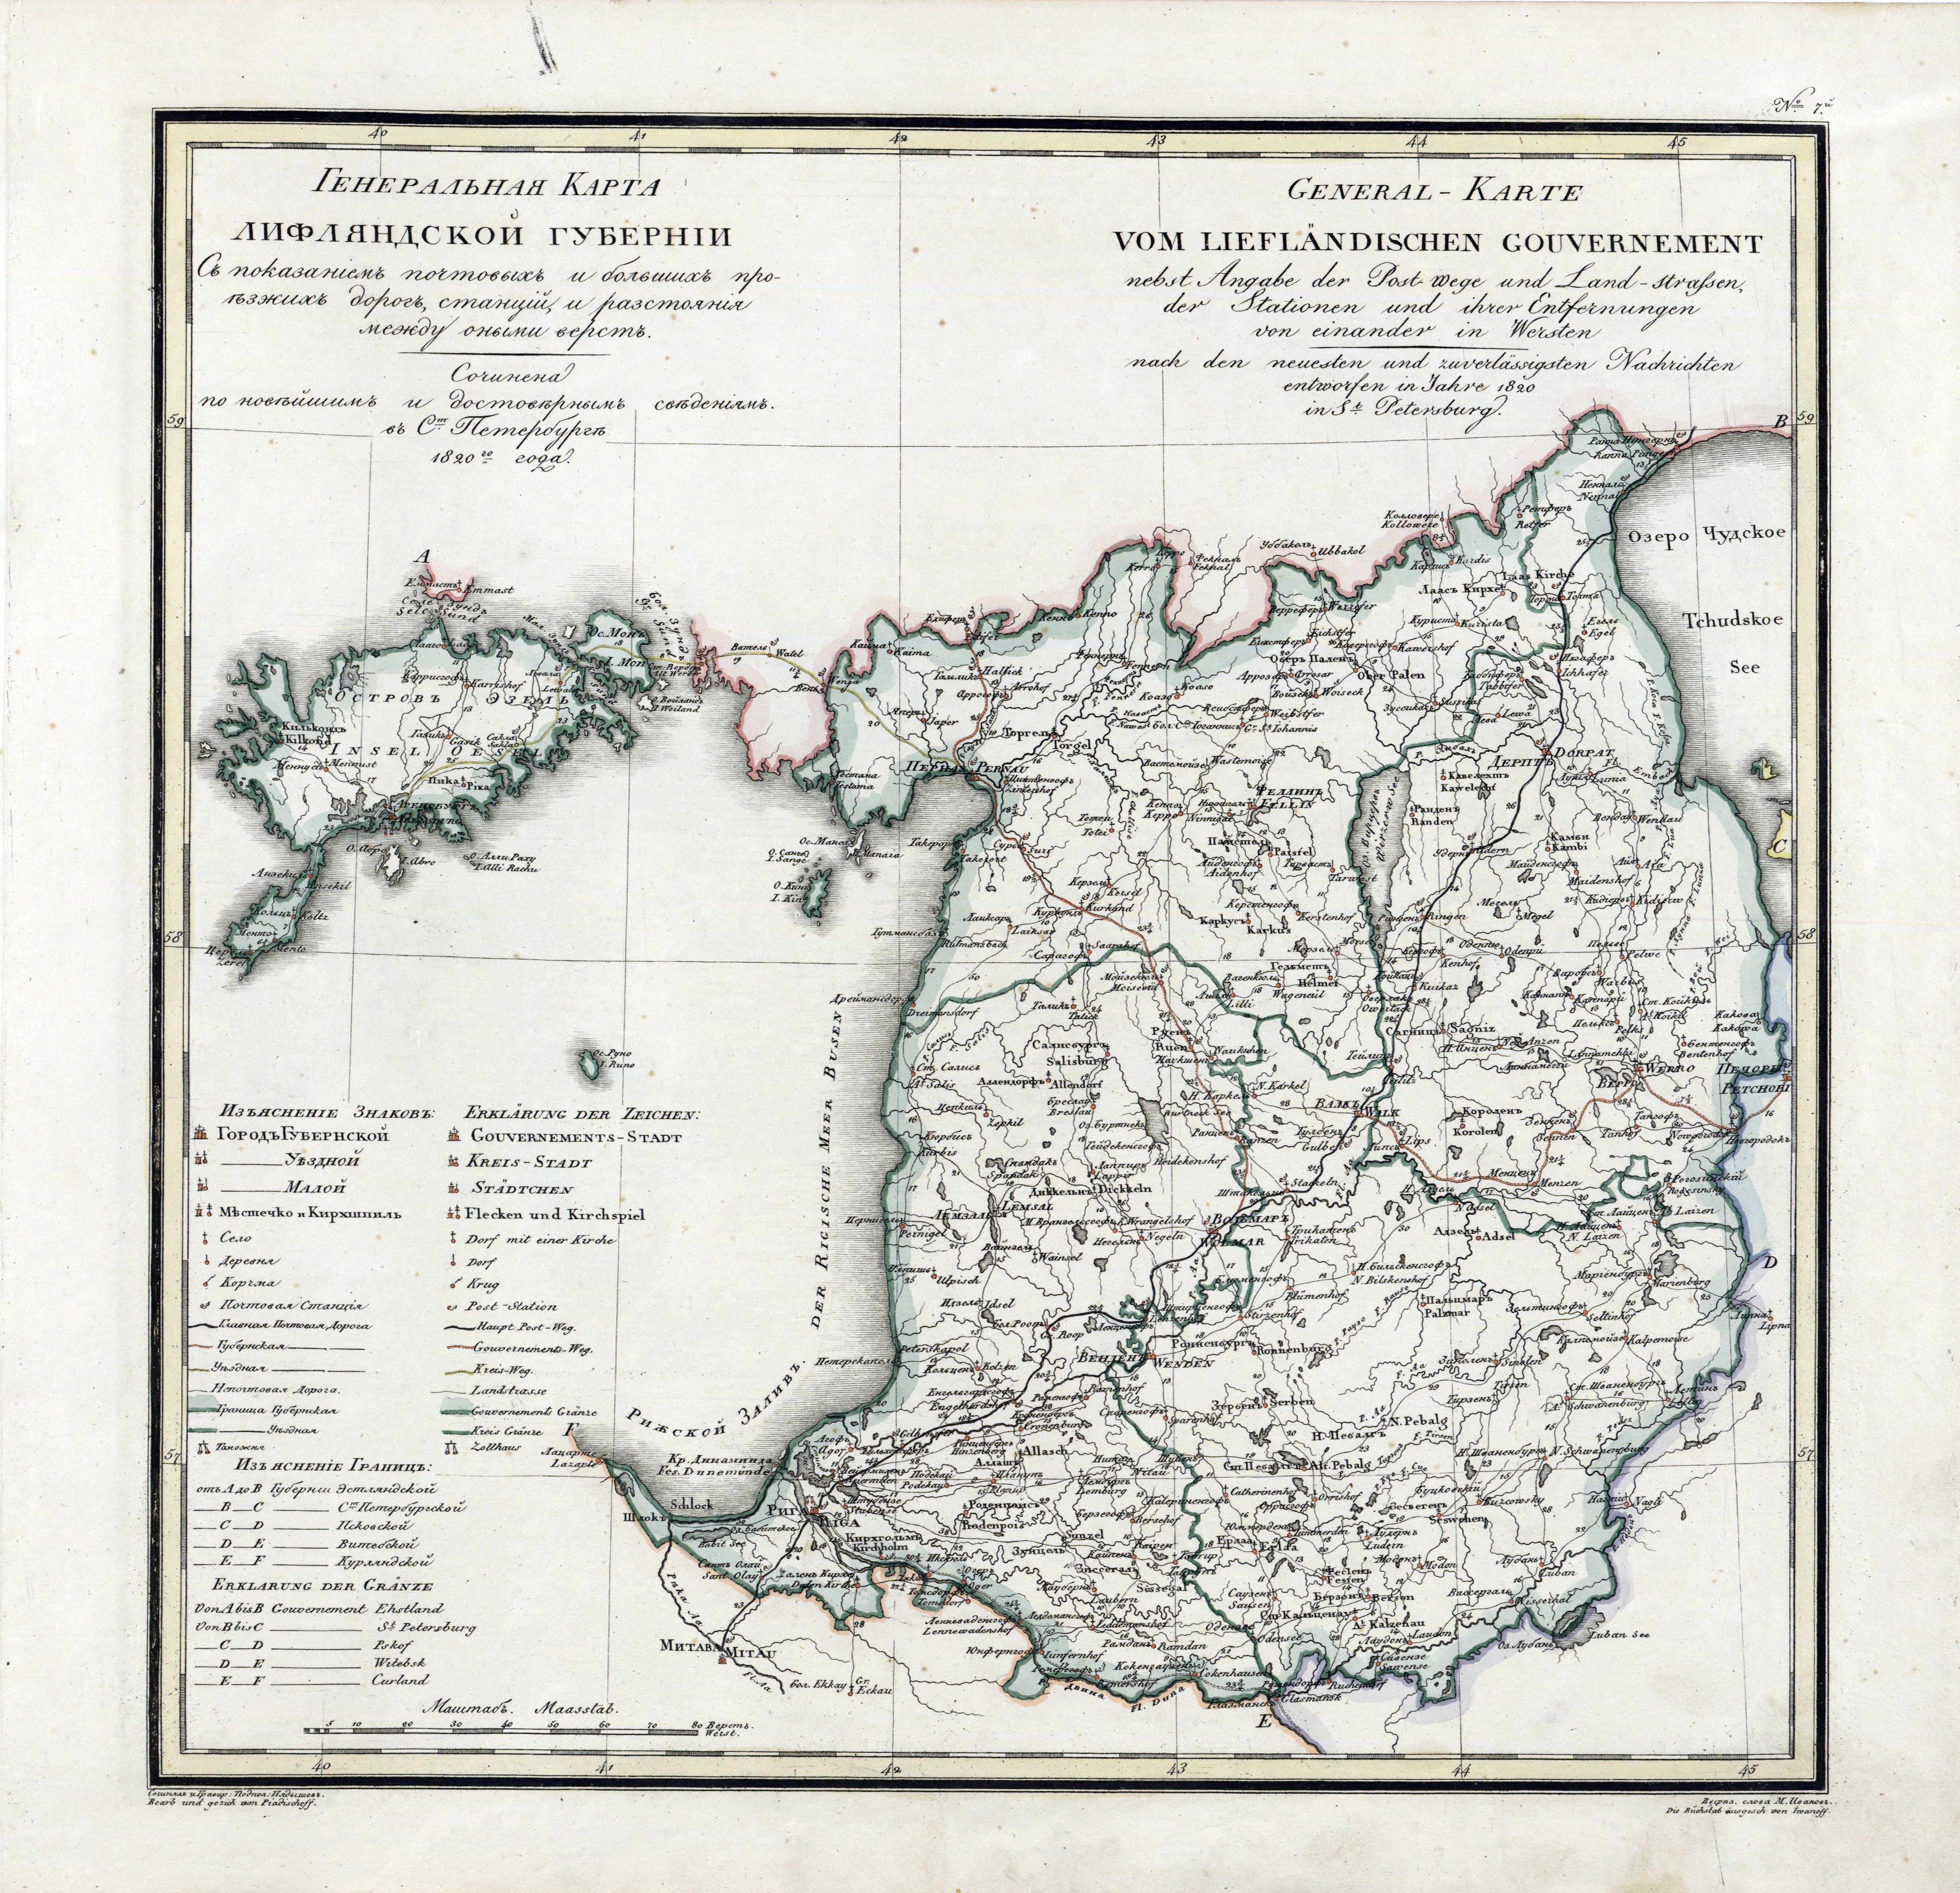 Beautiful map of the Governorate of Livonia of the Russian Empire